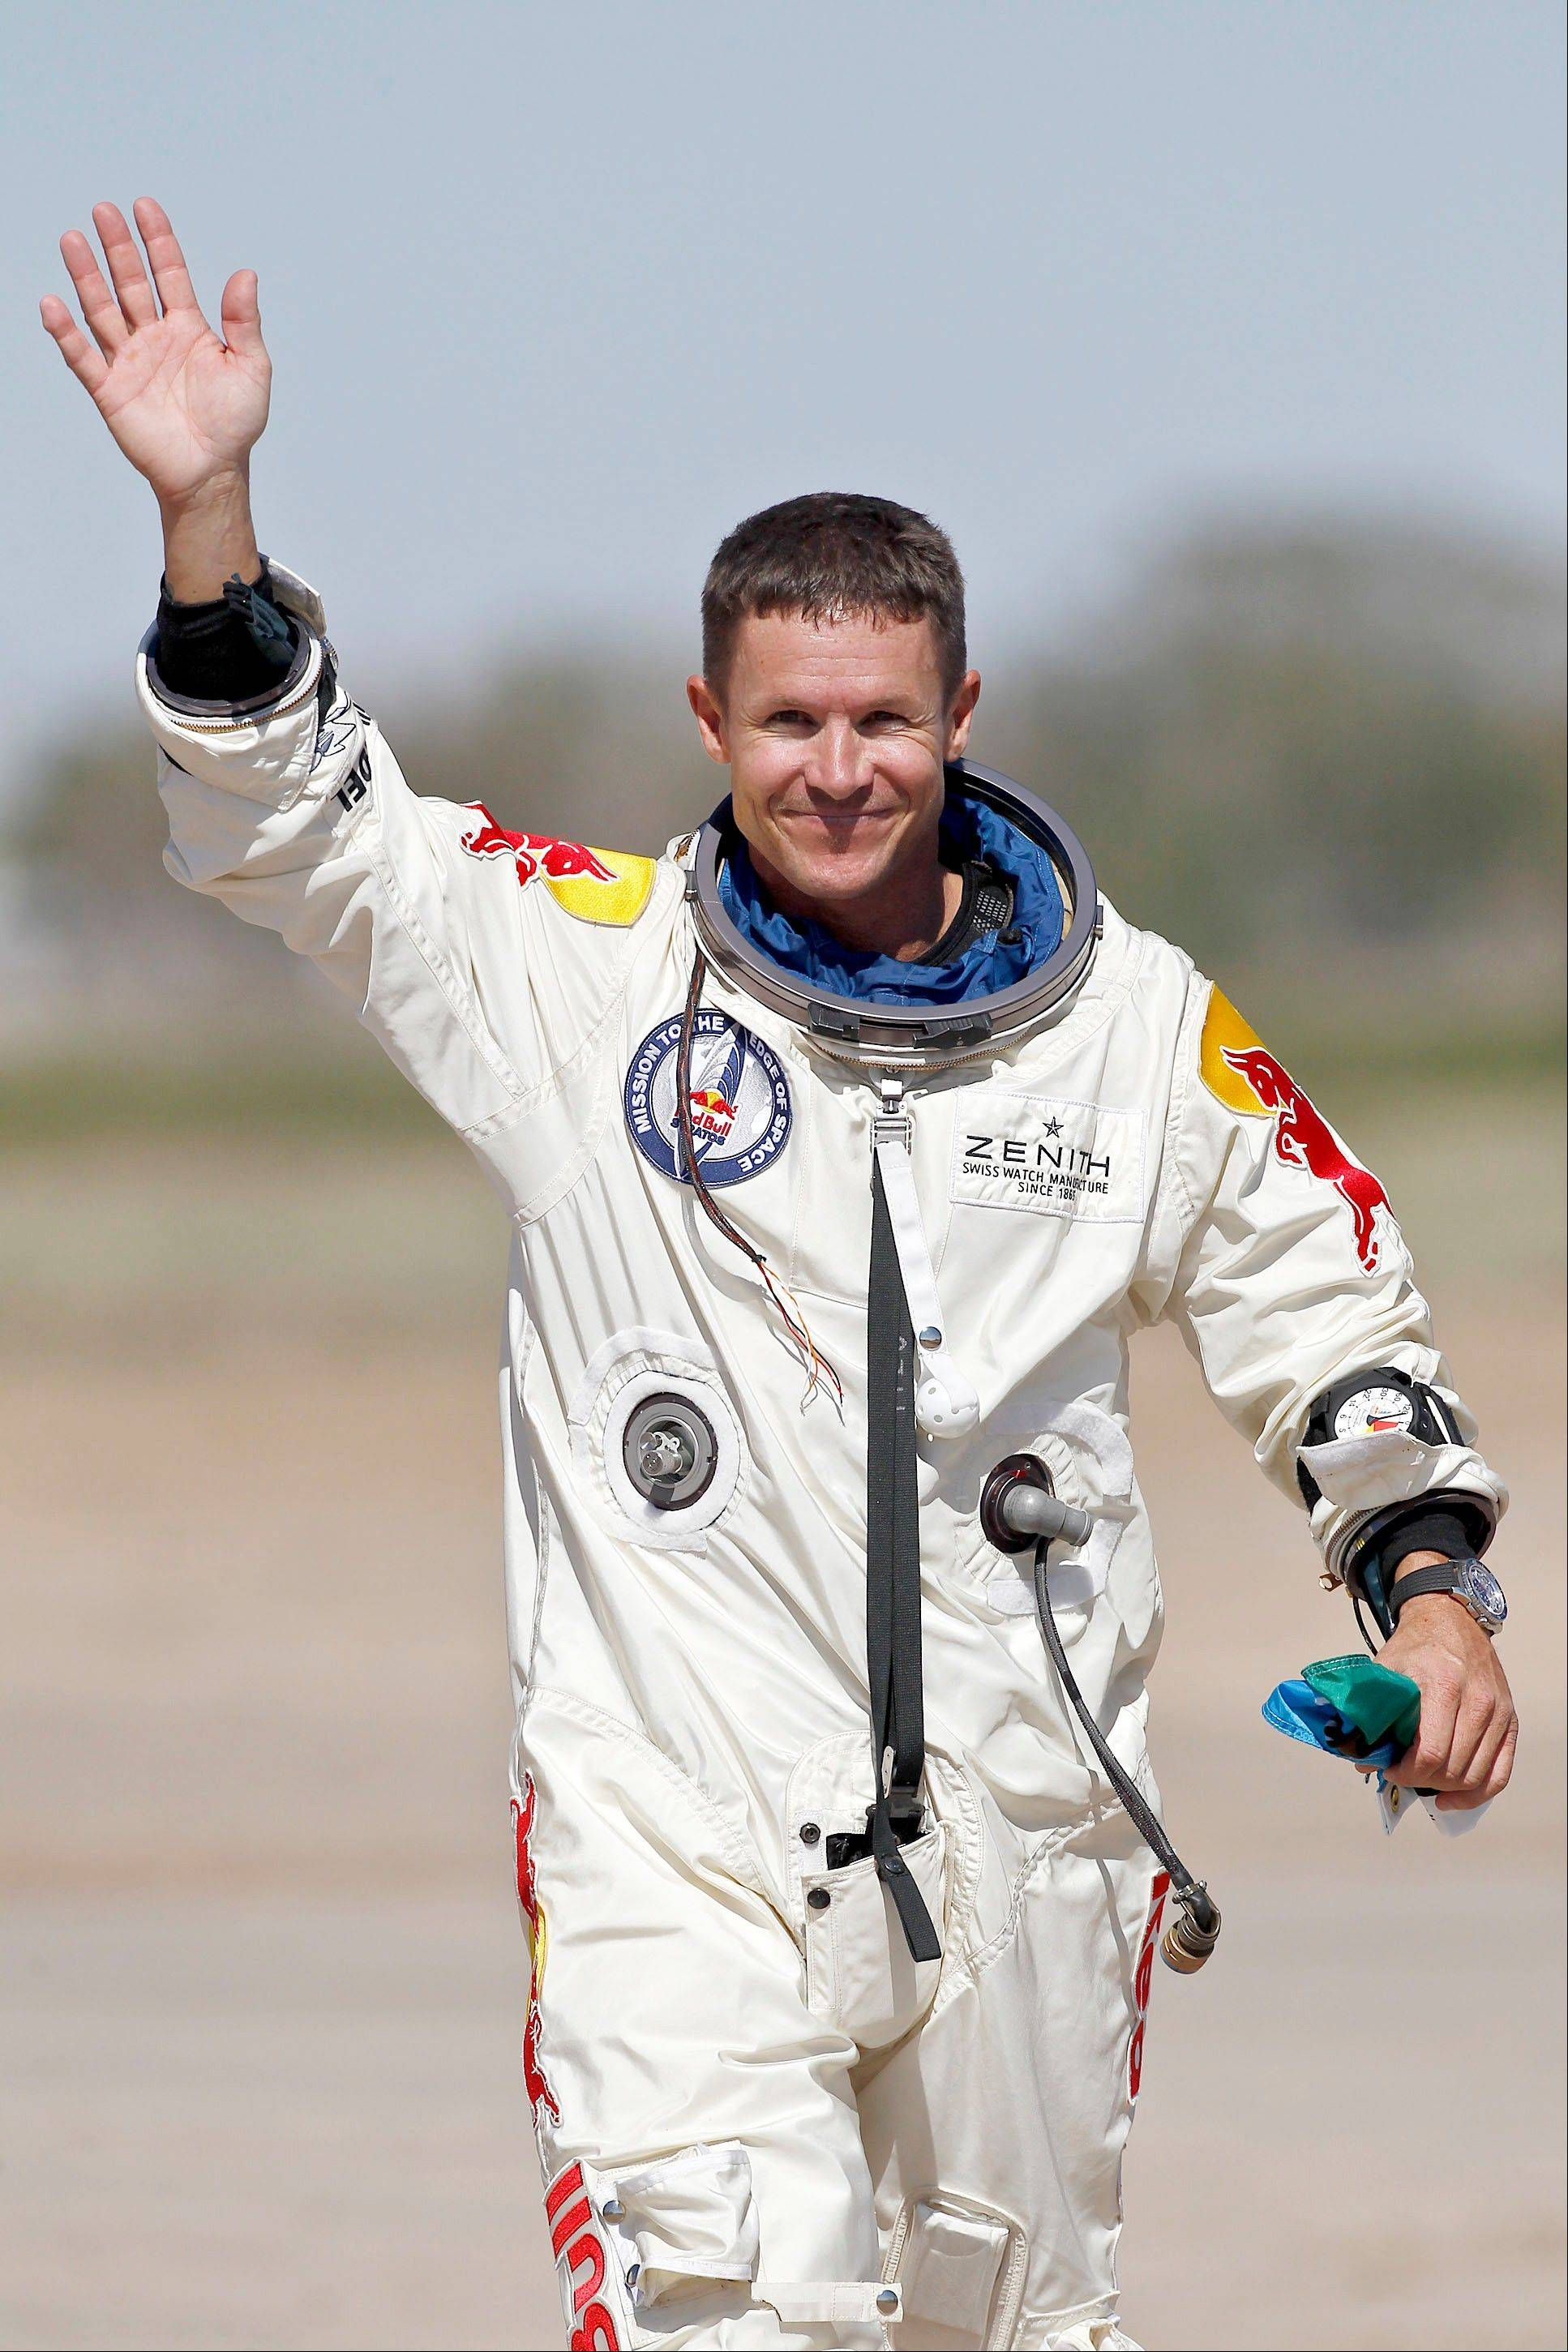 Felix Baumgartner, of Austria, waves to the crowd after successfully jumping from a space capsule lifted by a helium balloon at a height of just over 128,000 feet above the Earth's surface, Sunday, Oct. 14, 2012, in Roswell, N.M.